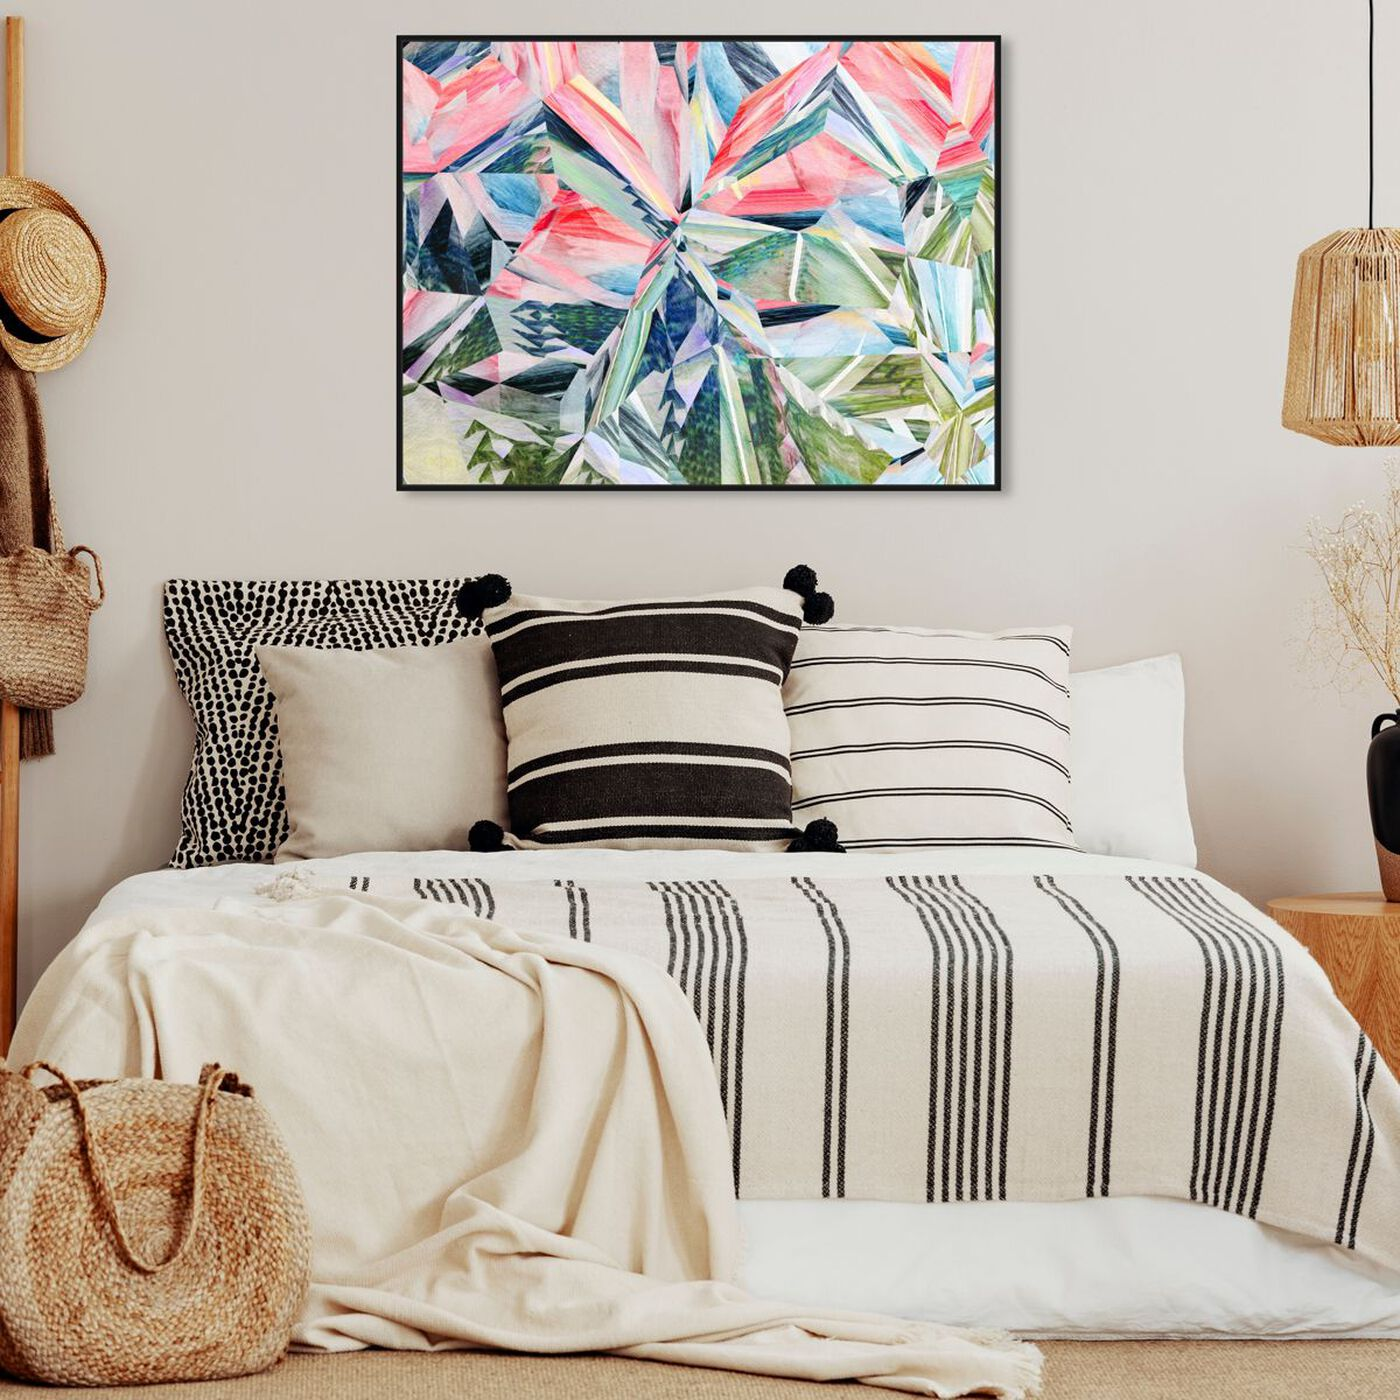 Hanging view of Right Choice featuring abstract and geometric art.